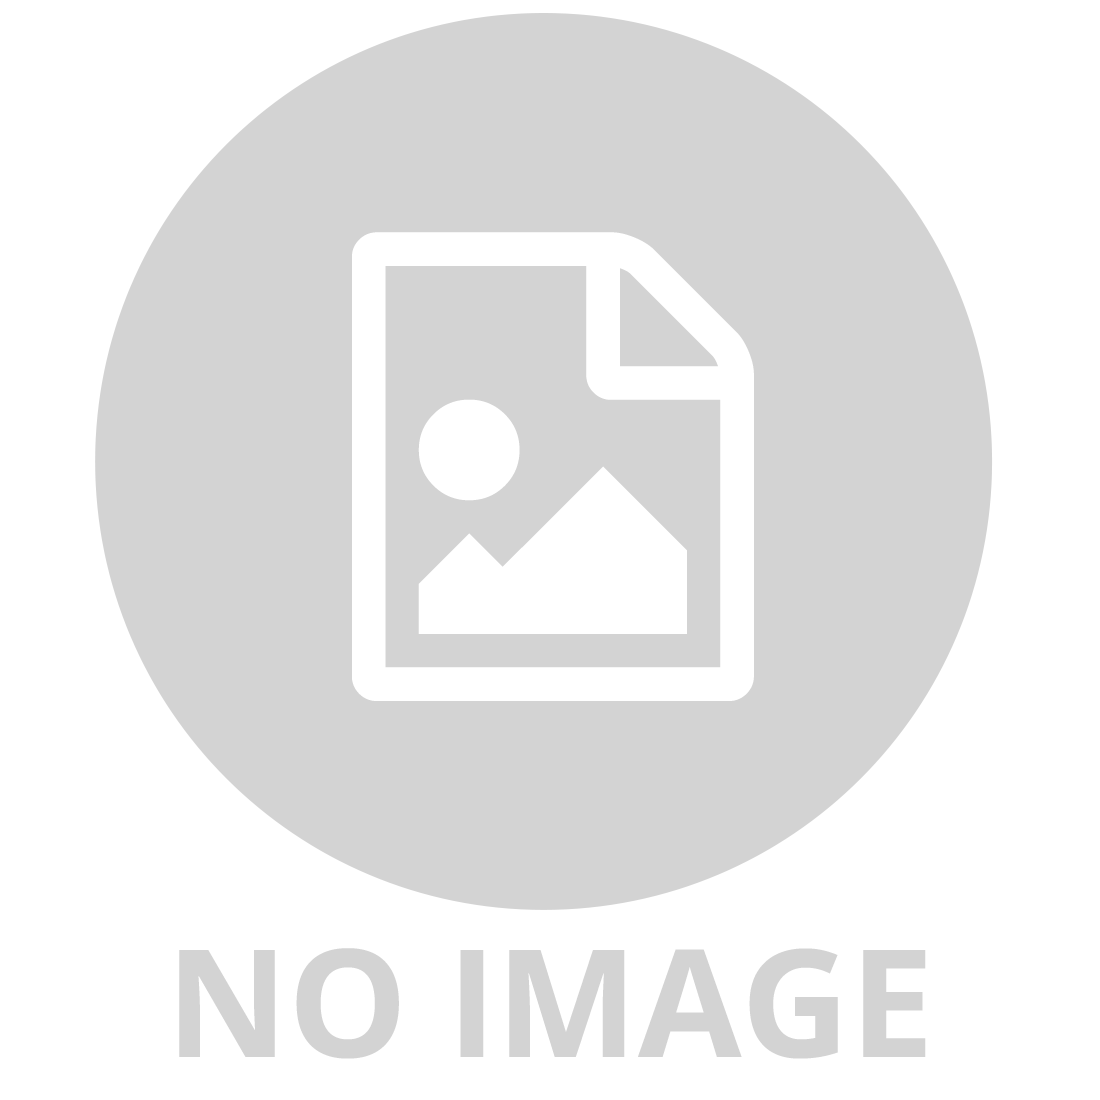 YOTECH TRIPLE SWITCH YOYO